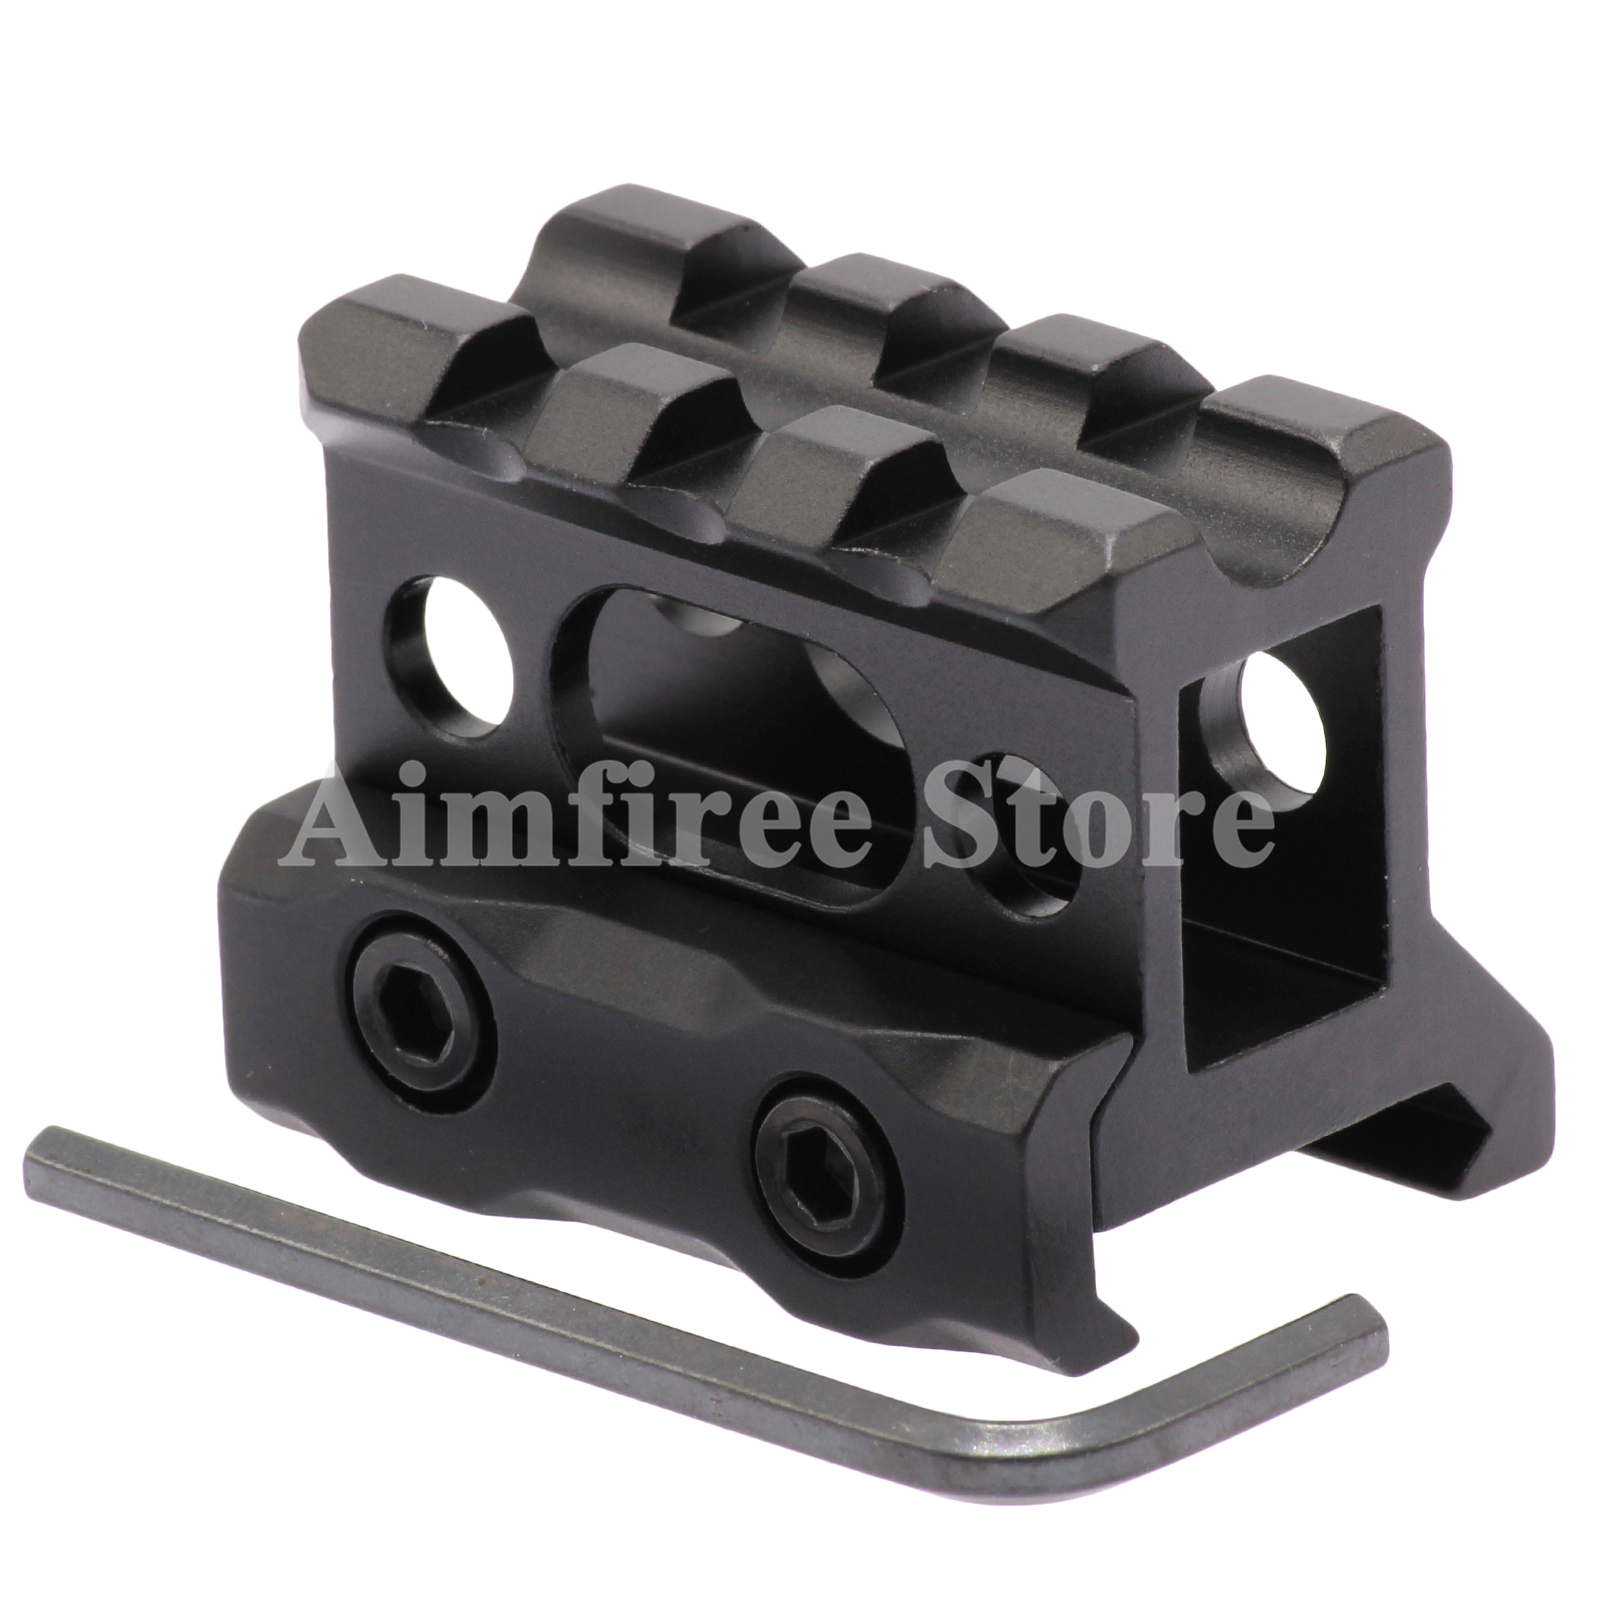 Tactical Quick Release Scope Riser Mount 20mm Picatinny QD Scope Rail Mount Middle Profile 3 Slots For Hunting